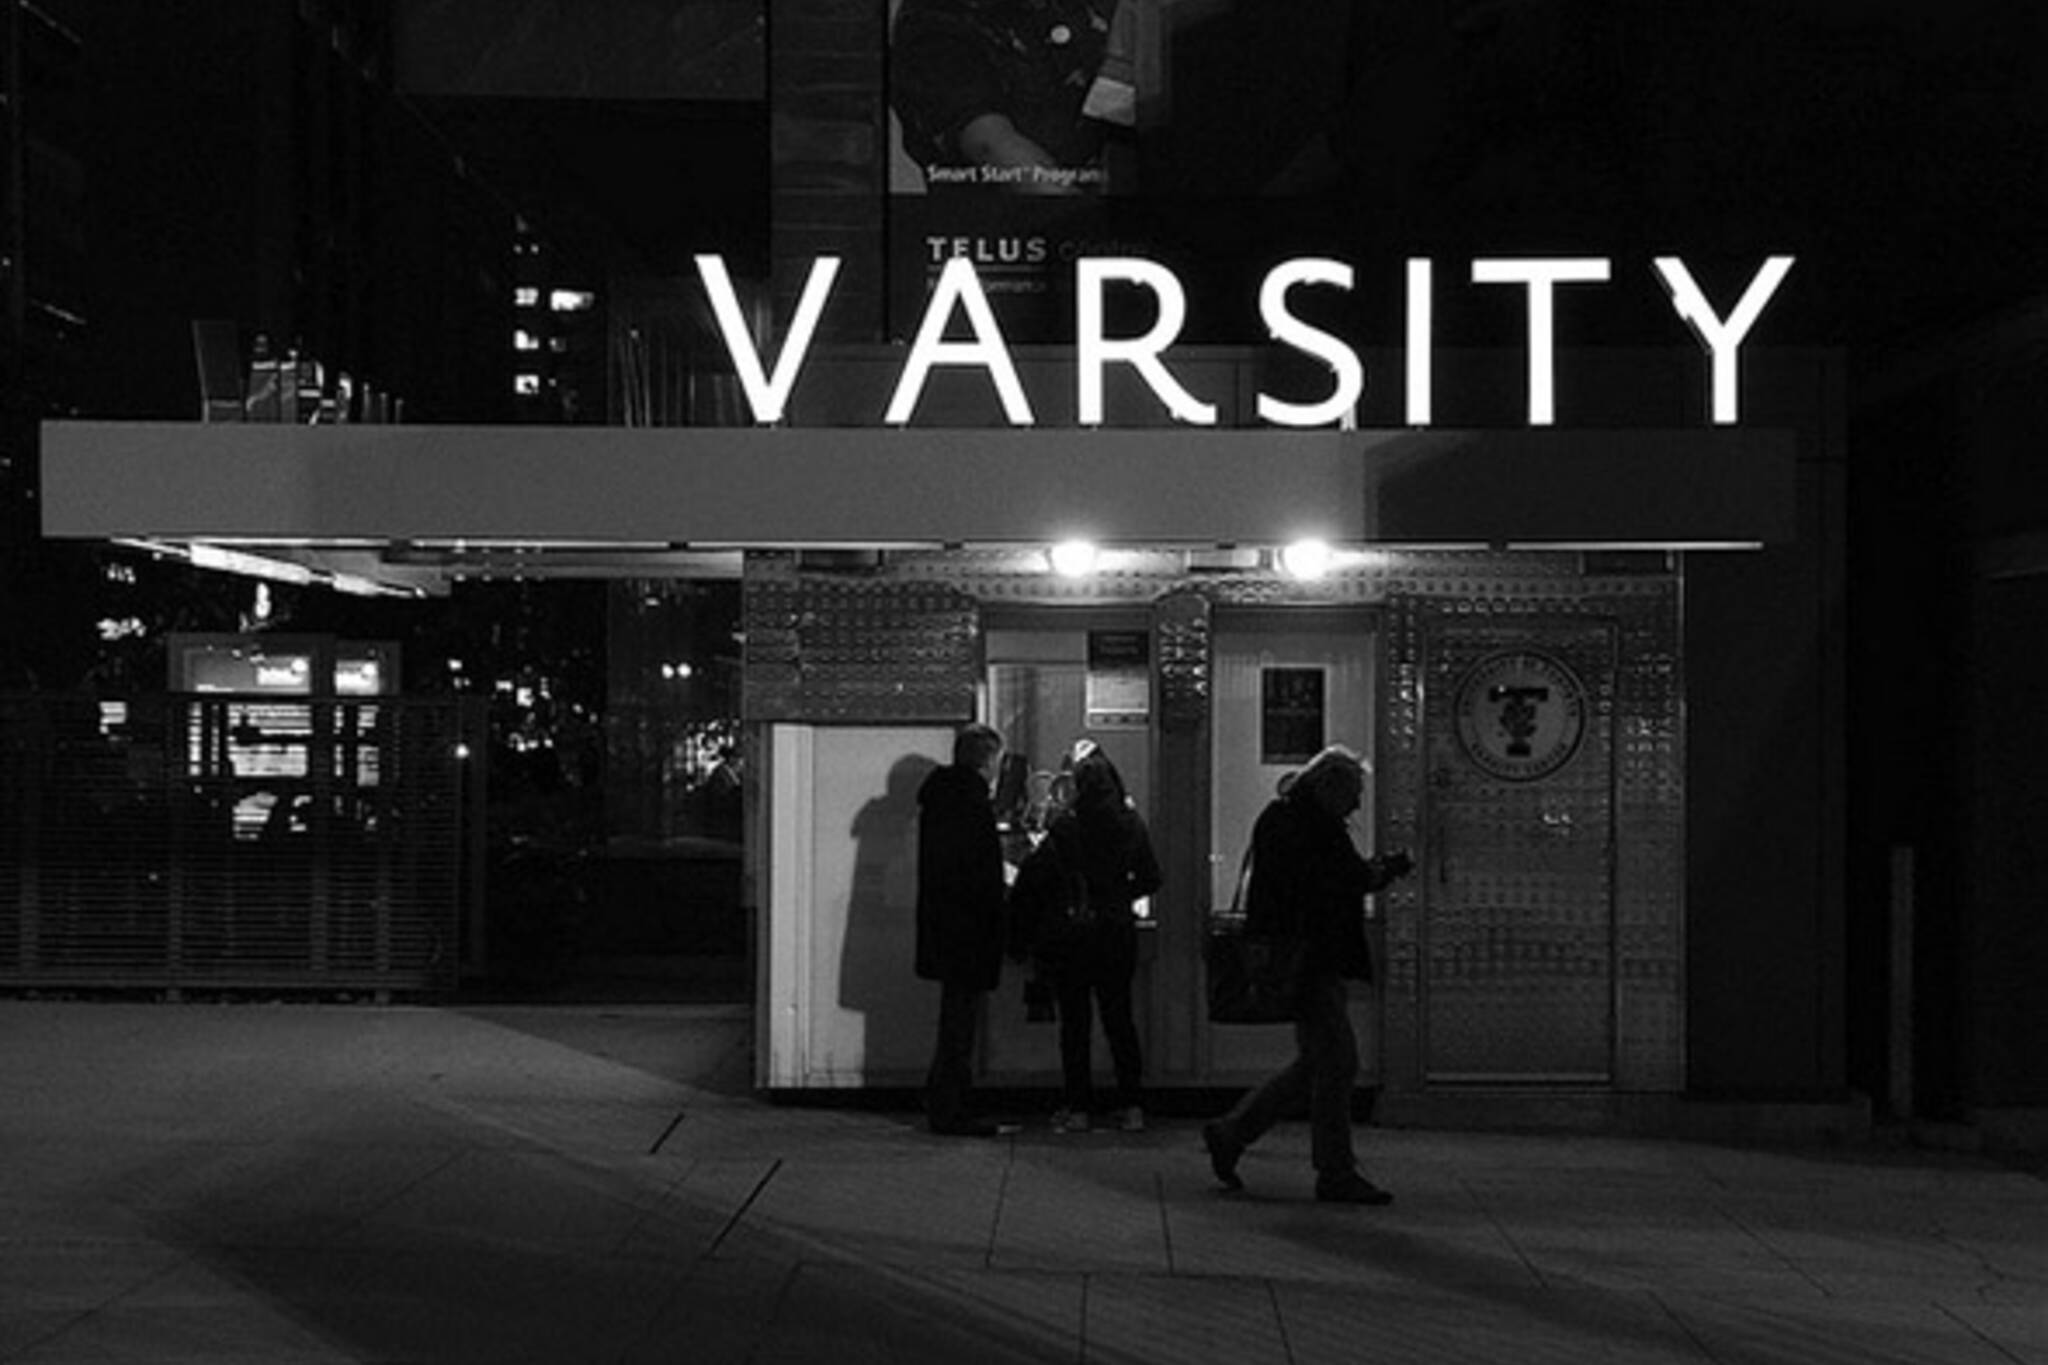 varsity. stadium, night